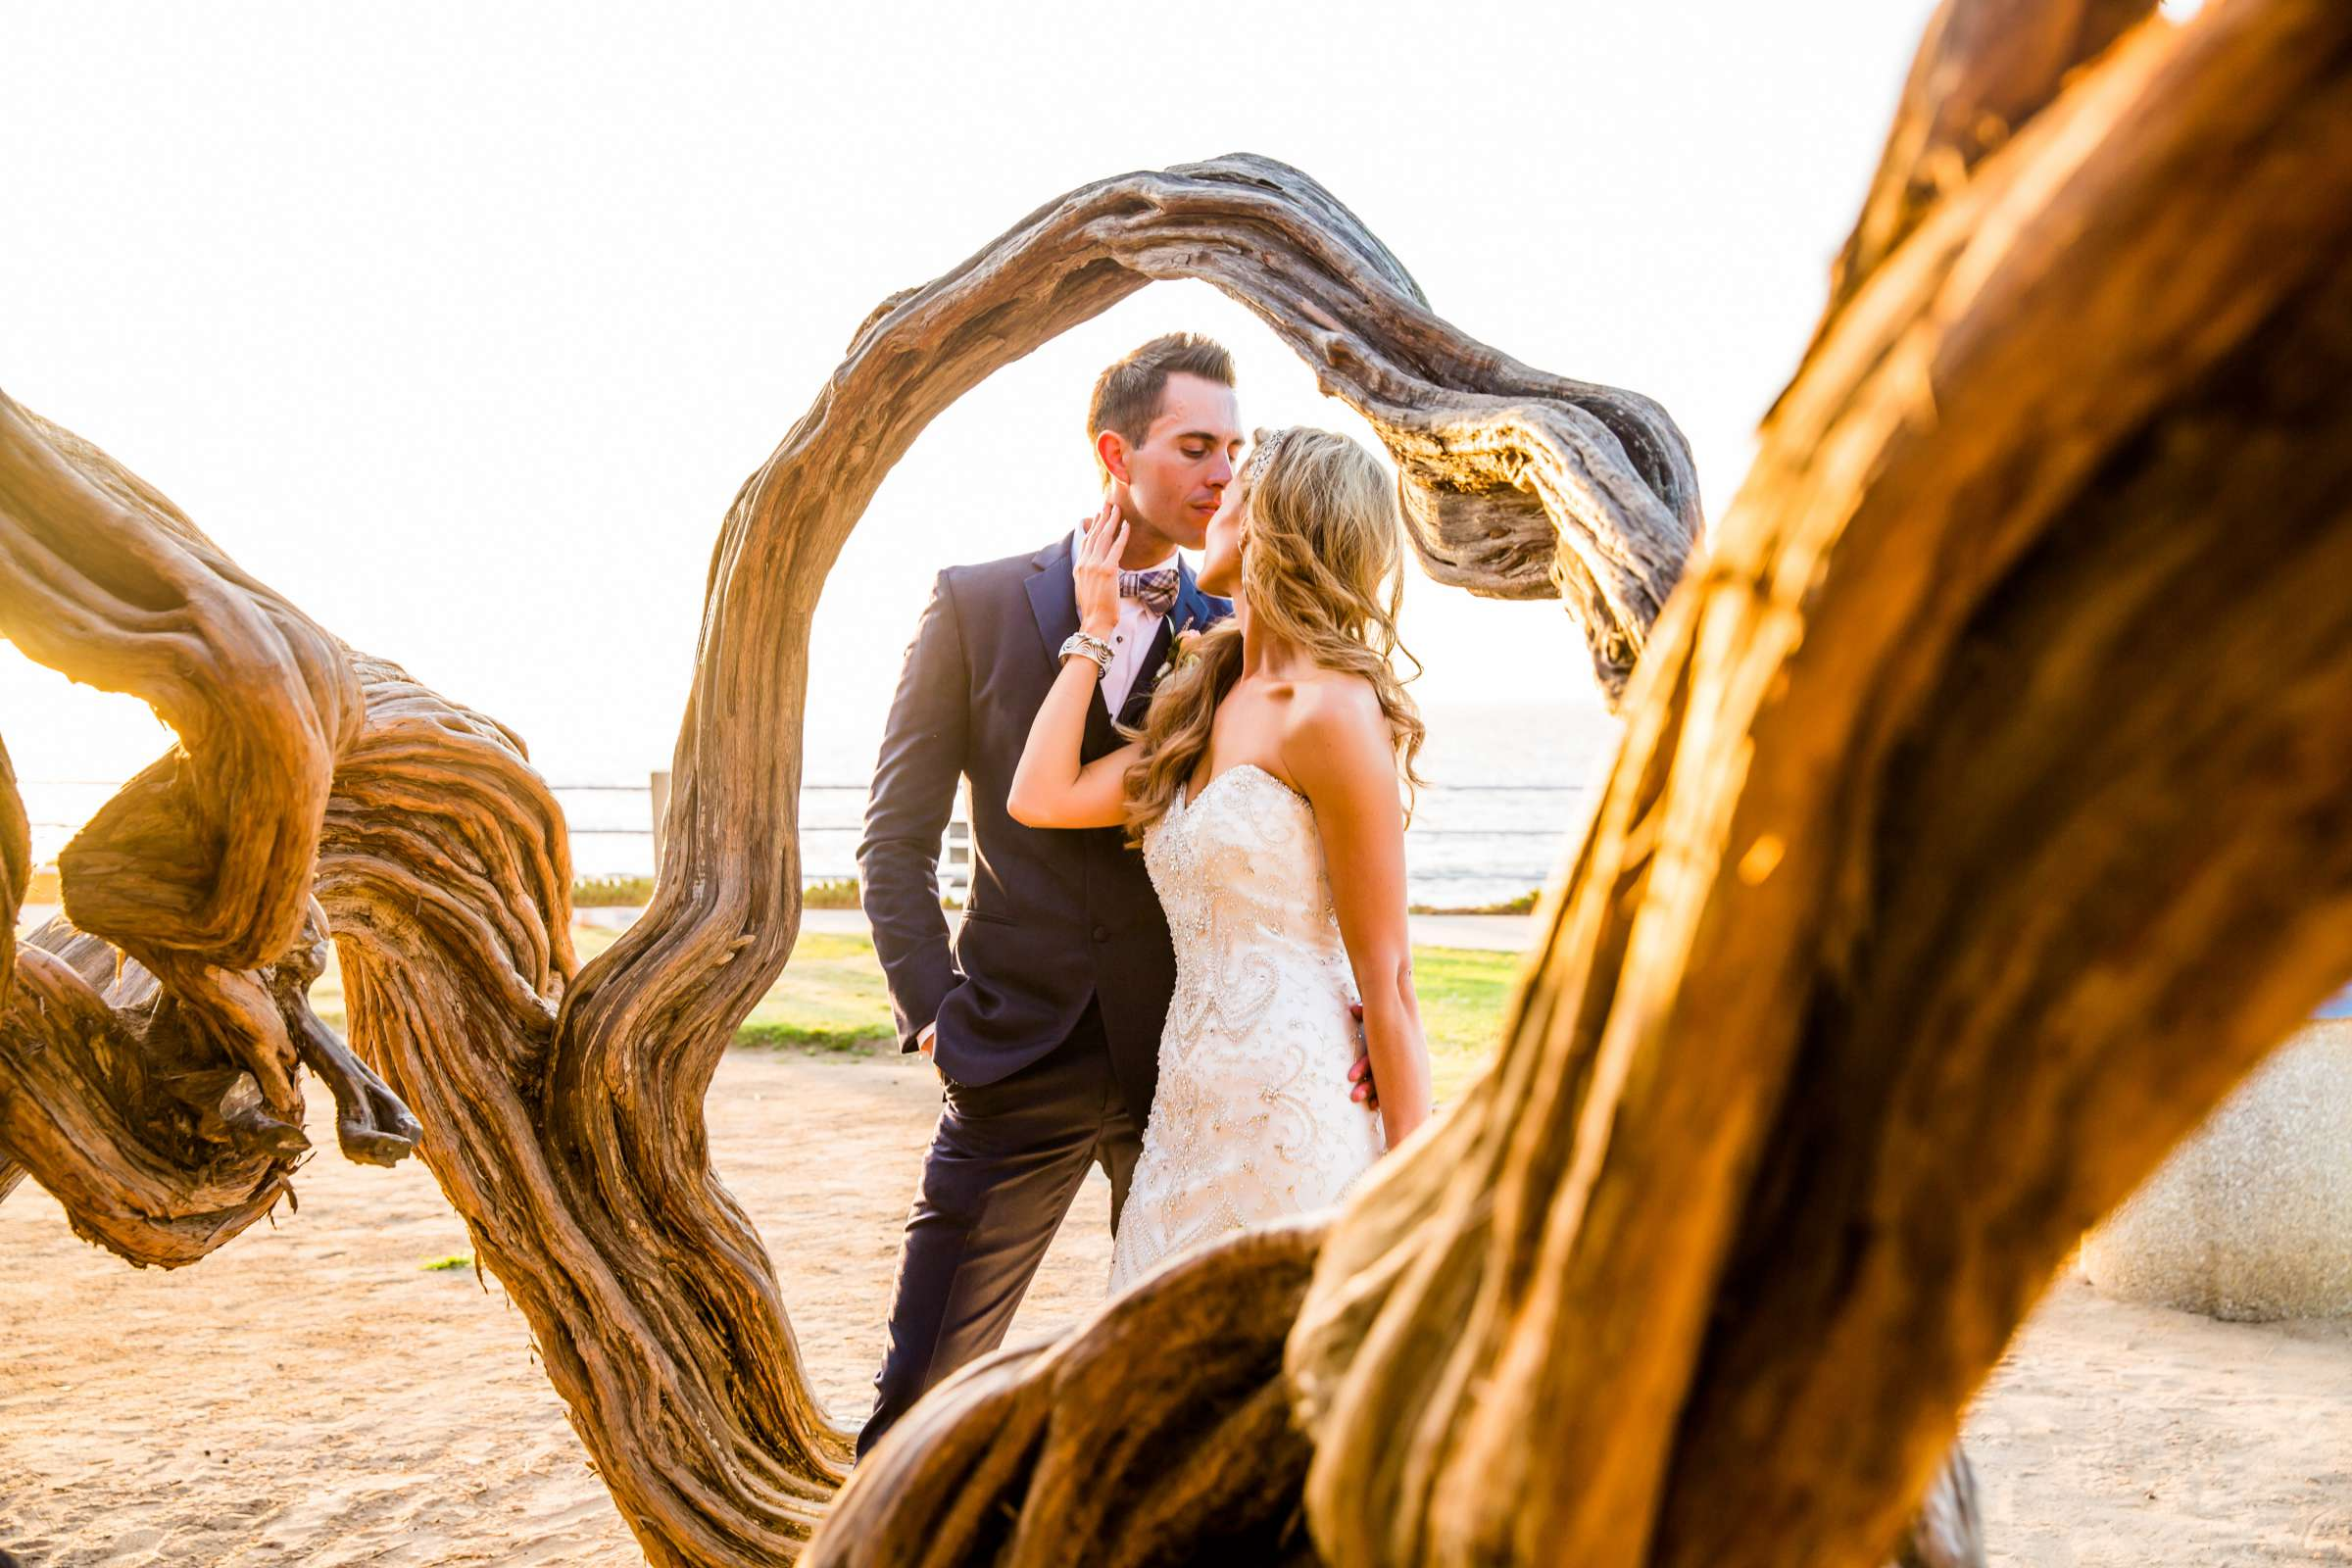 La Valencia Wedding coordinated by SD Weddings by Gina, Cindi and Luke Wedding Photo #2 by True Photography